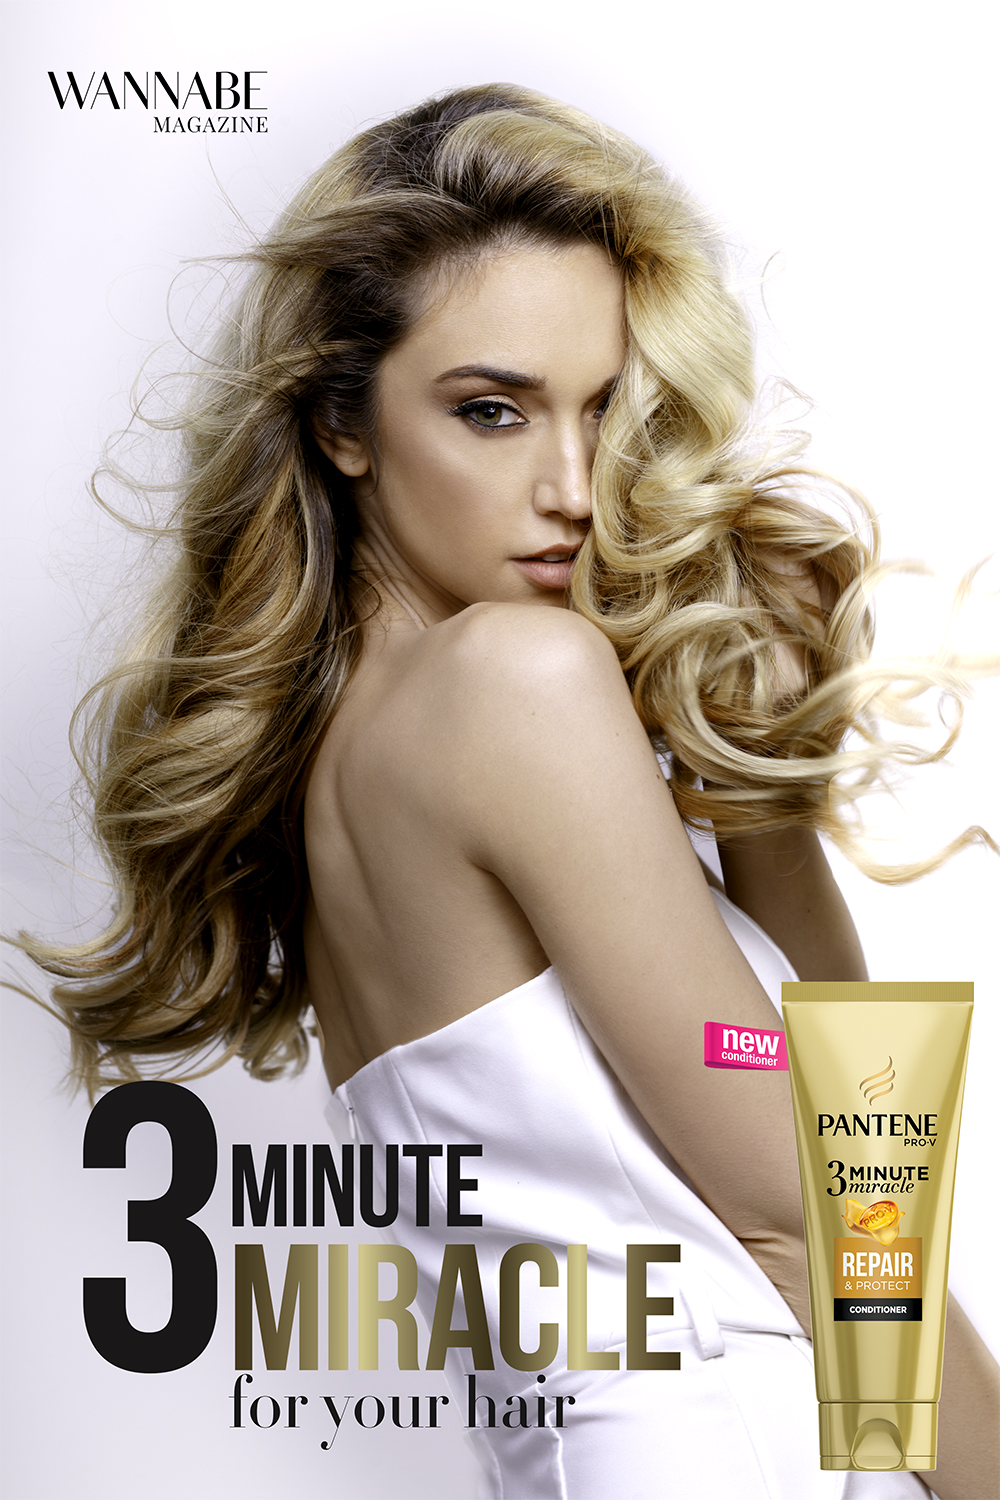 1 19 Wannabe editorijal: 3 Minute Miracle For Your Hair